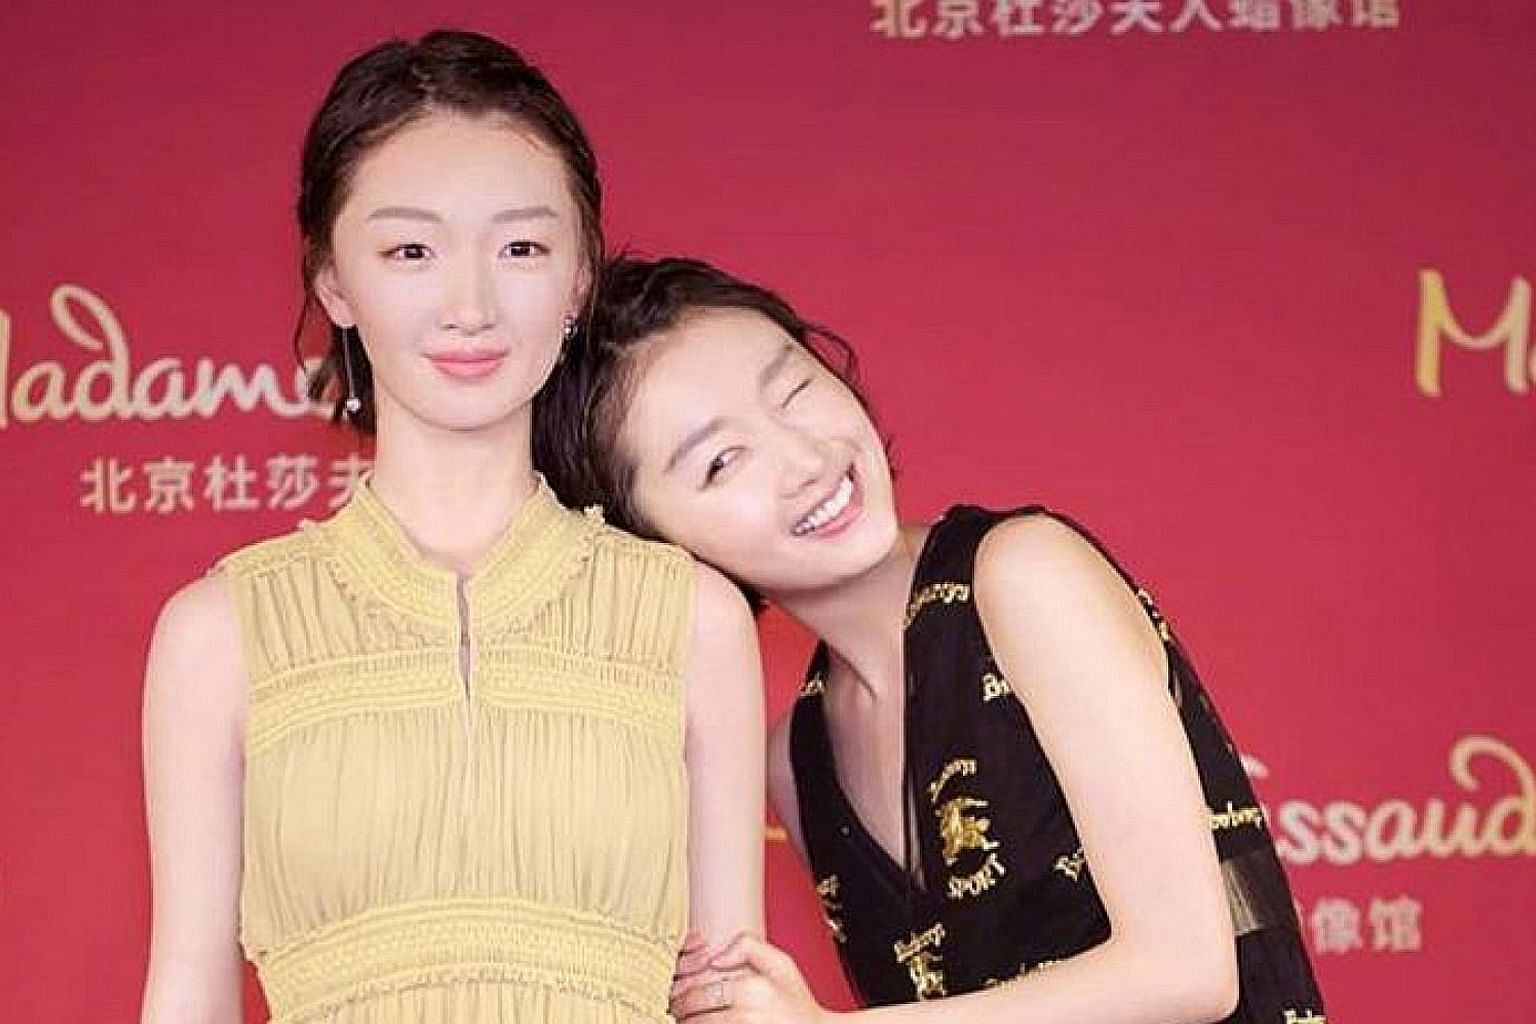 Zhou Dongyu, who won a Golden Horse trophy for Best Actress in 2016 for her role in Soul Mate, has found a soulmate in her likeness. Madame Tussauds in Beijing recently installed a wax figure (in yellow gown) of the actress, who made box-office waves